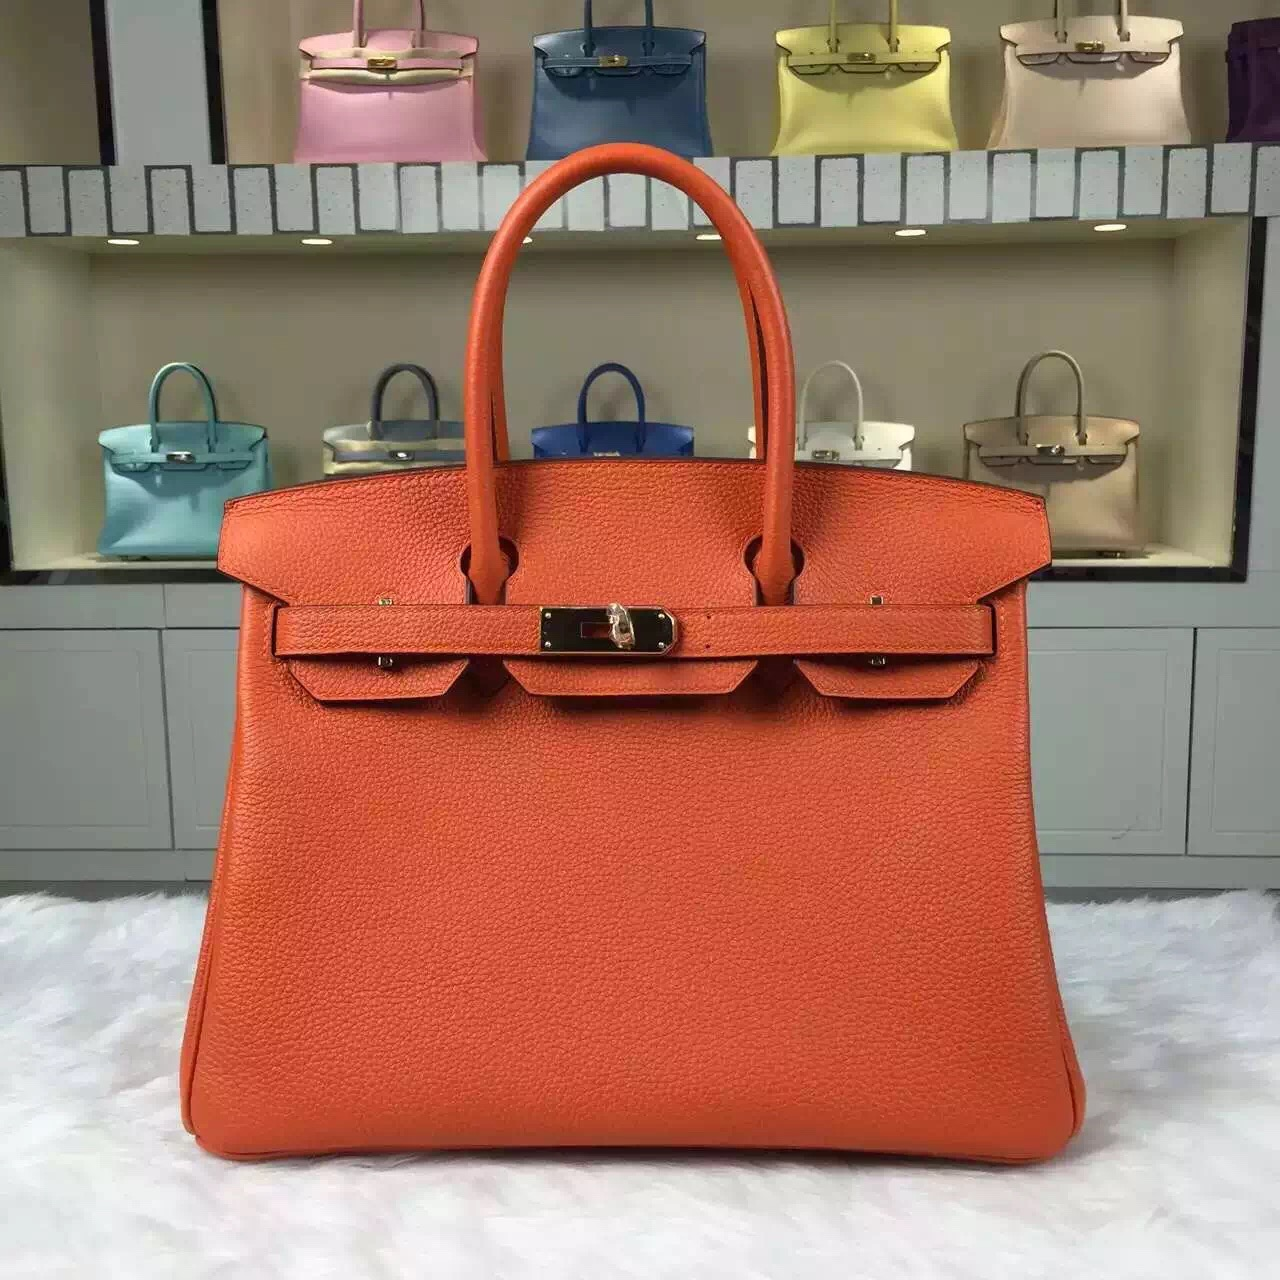 herme birkin - Q5 Candy Red Togo Leather Hermes Birkin30 Gold/Silver Hardware �� HEMA